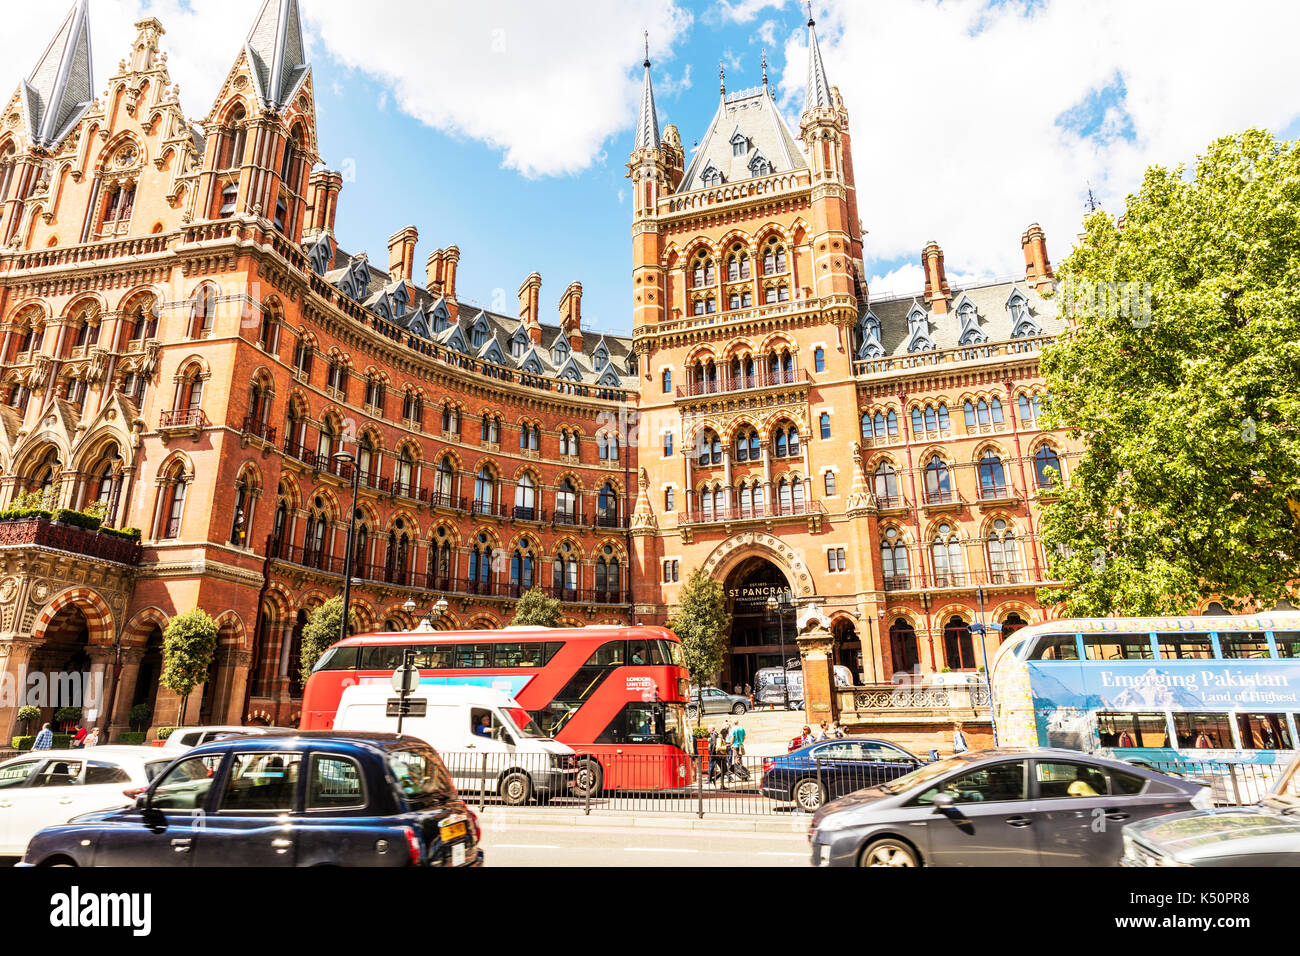 St. Pancras Renaissance London Hotel (formerly St Pancras Midland Grand hotel) Euston Road London UK England, St Pancras hotel London, London hotels - Stock Image